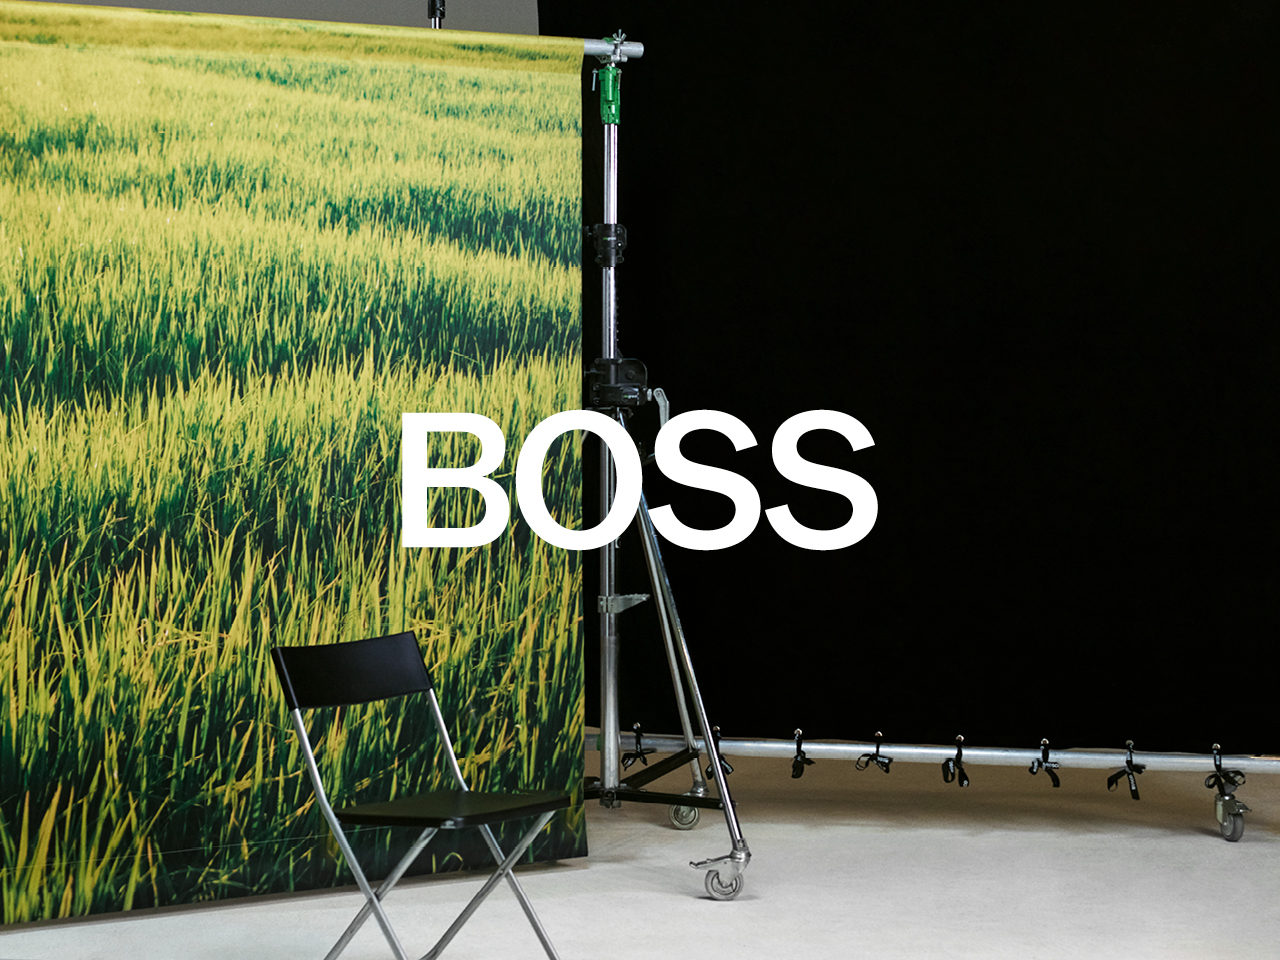 Hugo Boss, Boss, Sustainable Campaign, The Journey, SS21, Benjamin Grillon, Art Direction, Creative Direction, Pascal Gambarte, Sara van Pée, Animal, Motif Management, Agency Triptyque, Roxanne Doucet, Romain Choay, Aivita Muze, Viva, Simone Schofer, Jeremiah Berko Fordjour, New Madison